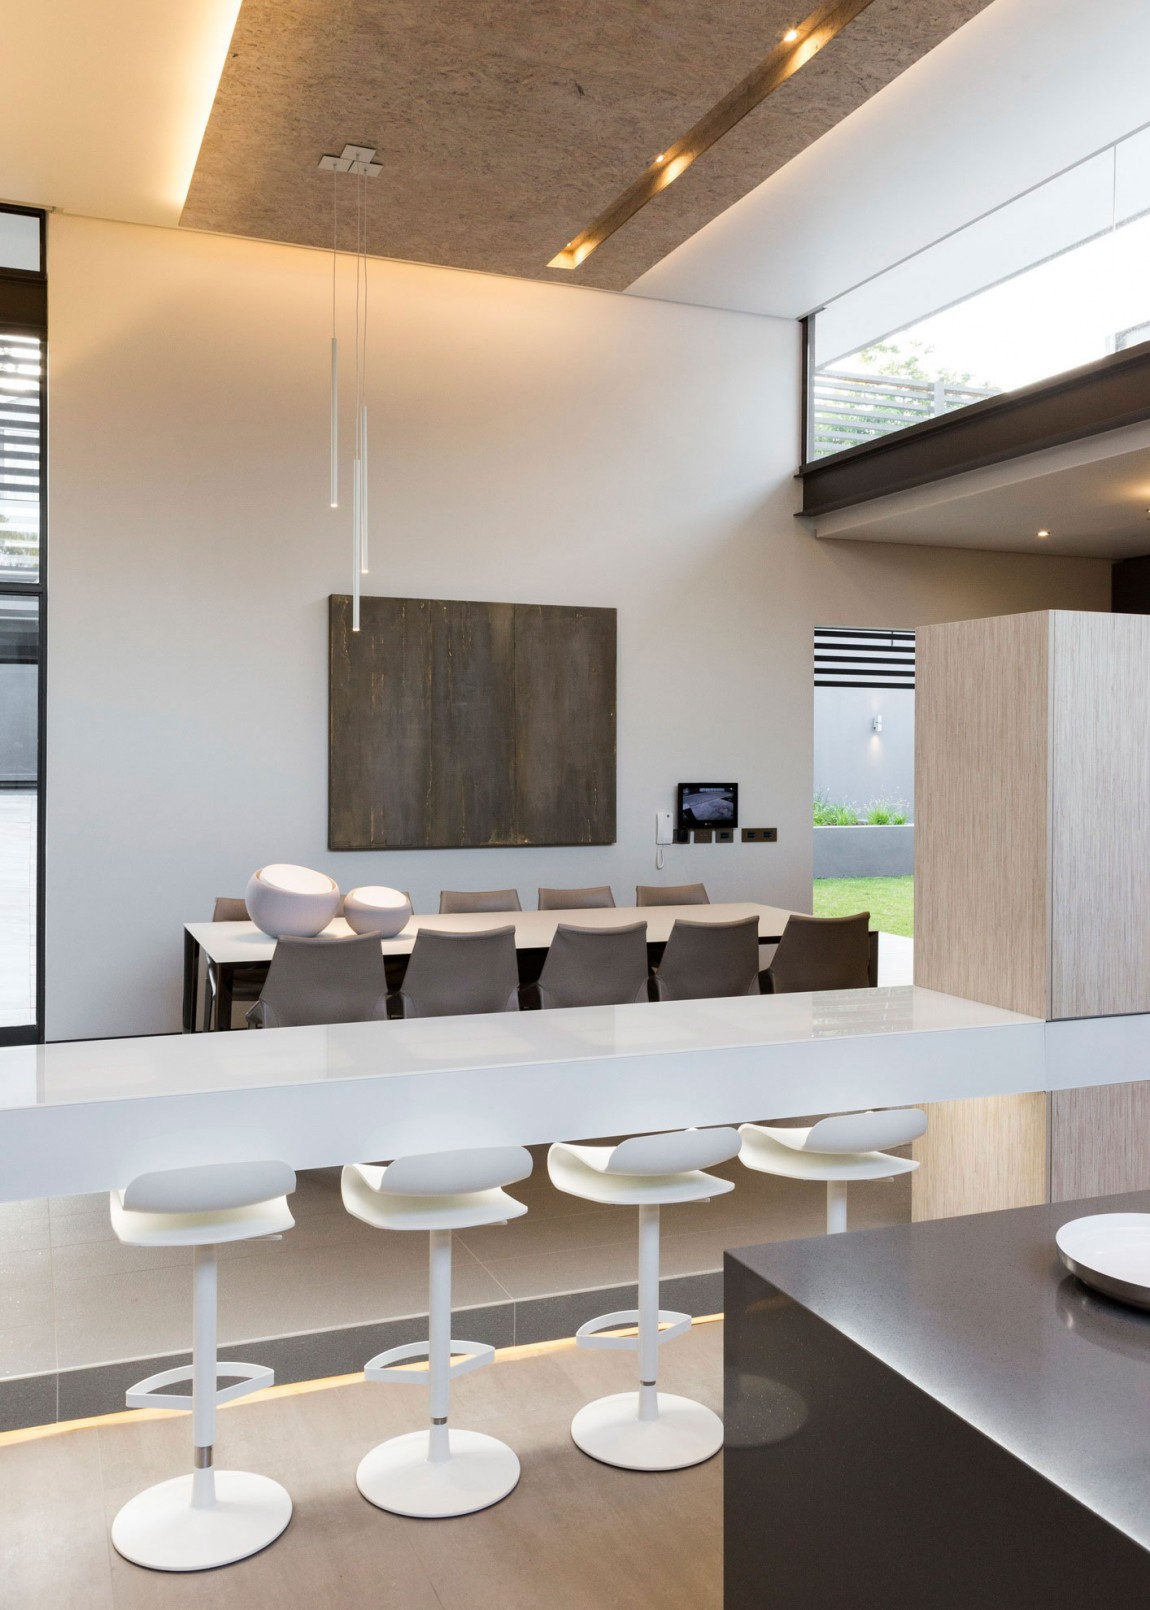 Modern kitchen furniture in House Sar by Nico van der Meulen Architects